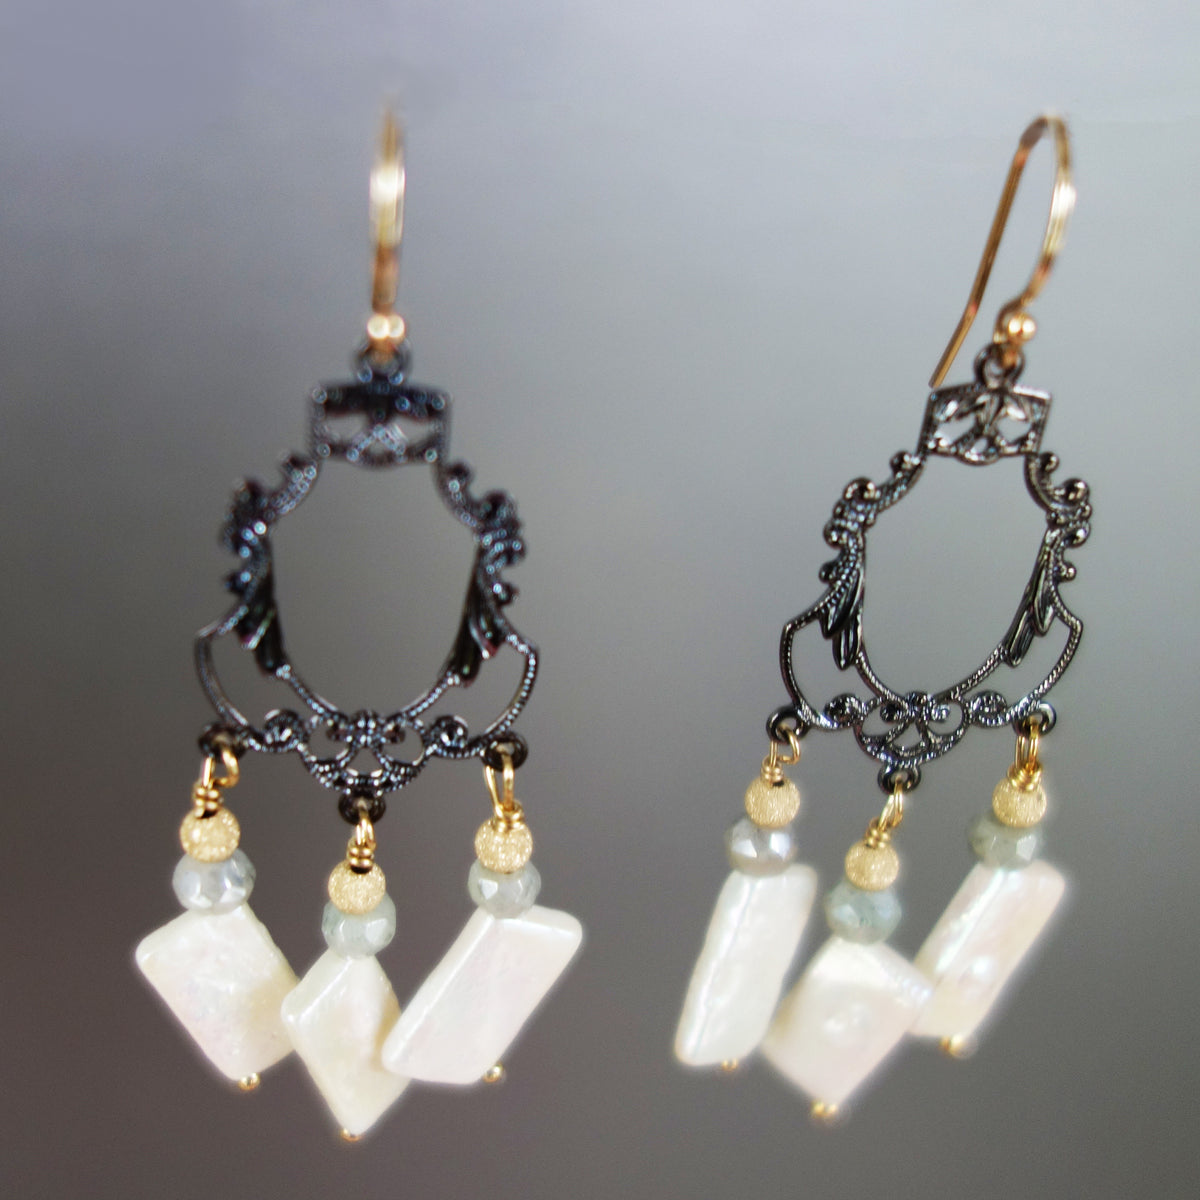 Silver, Gold, and Pearl Chandelier Earrings (Wanderlust Paris)